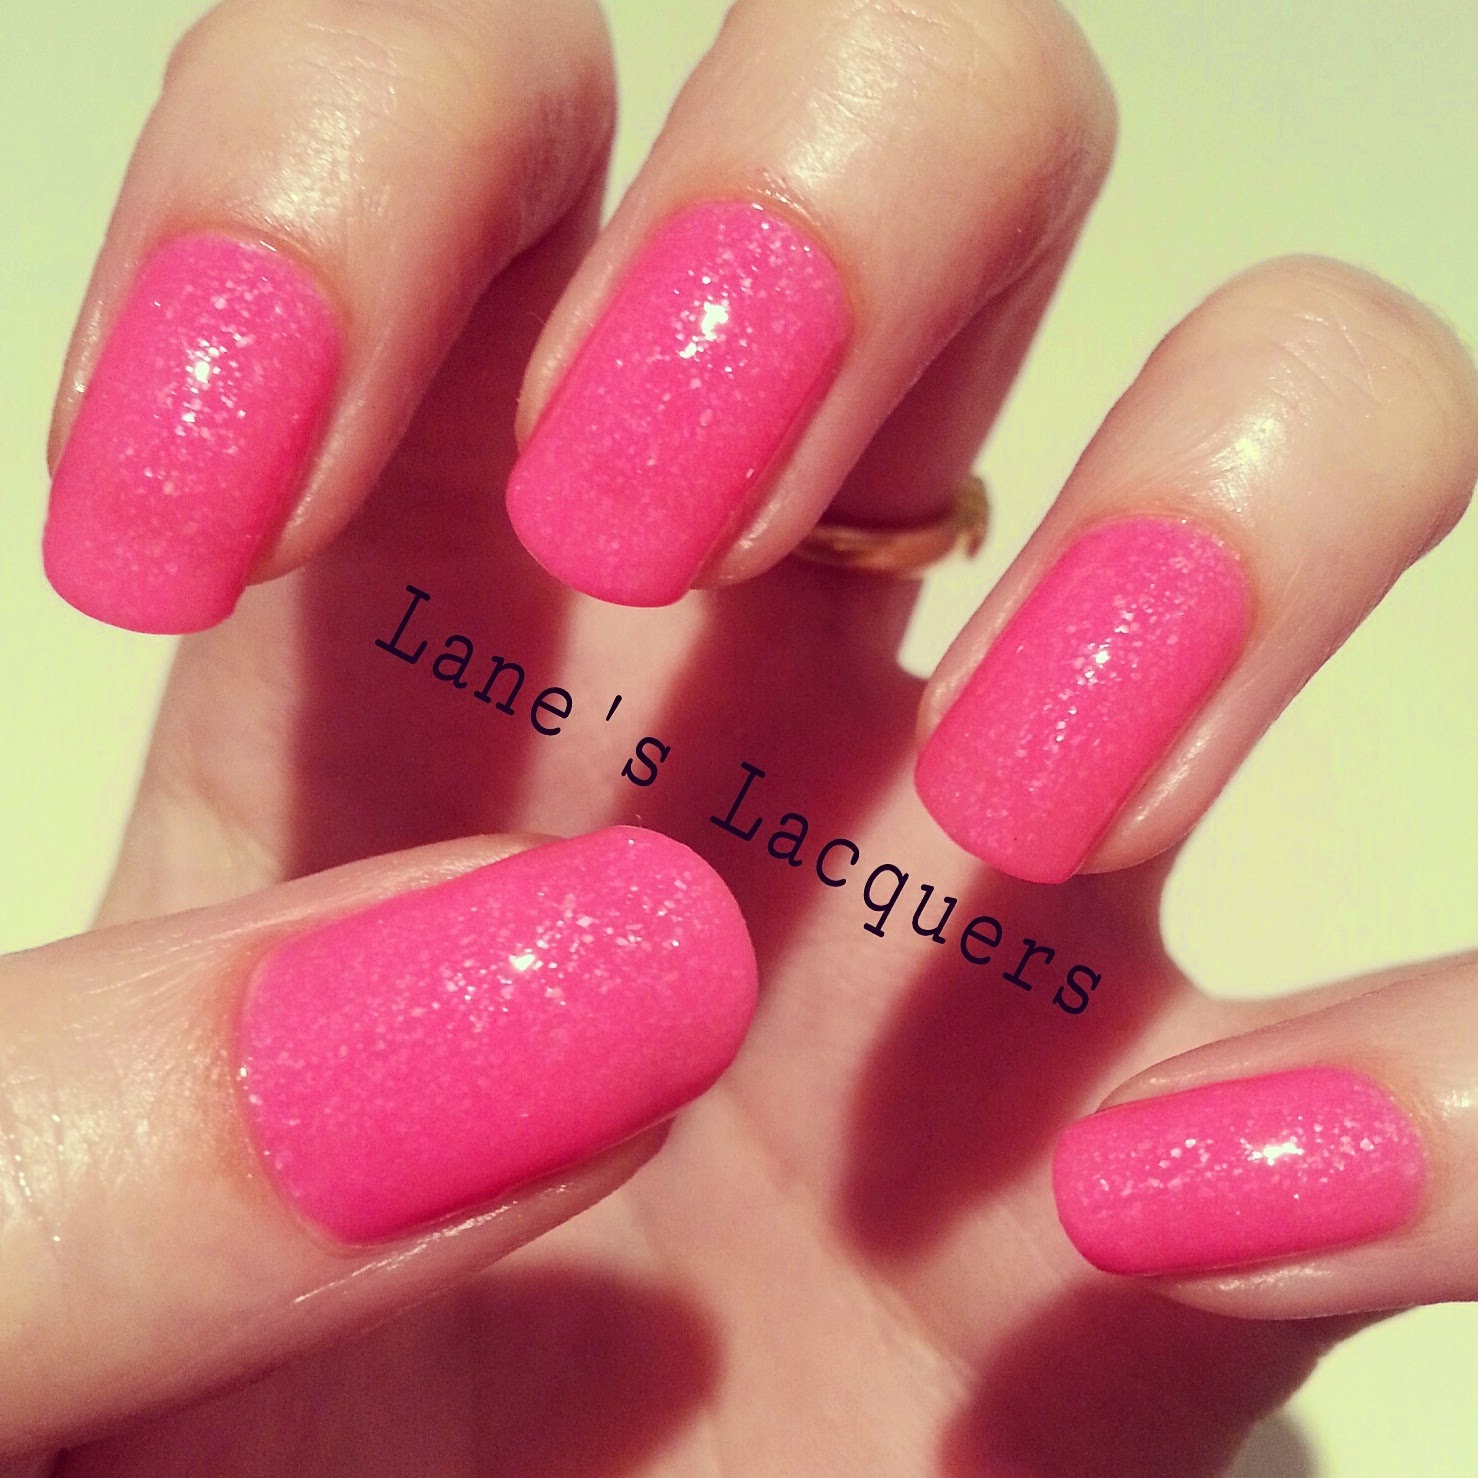 new-models-own-luxe-collection-radiant-pink-swatch-manicure